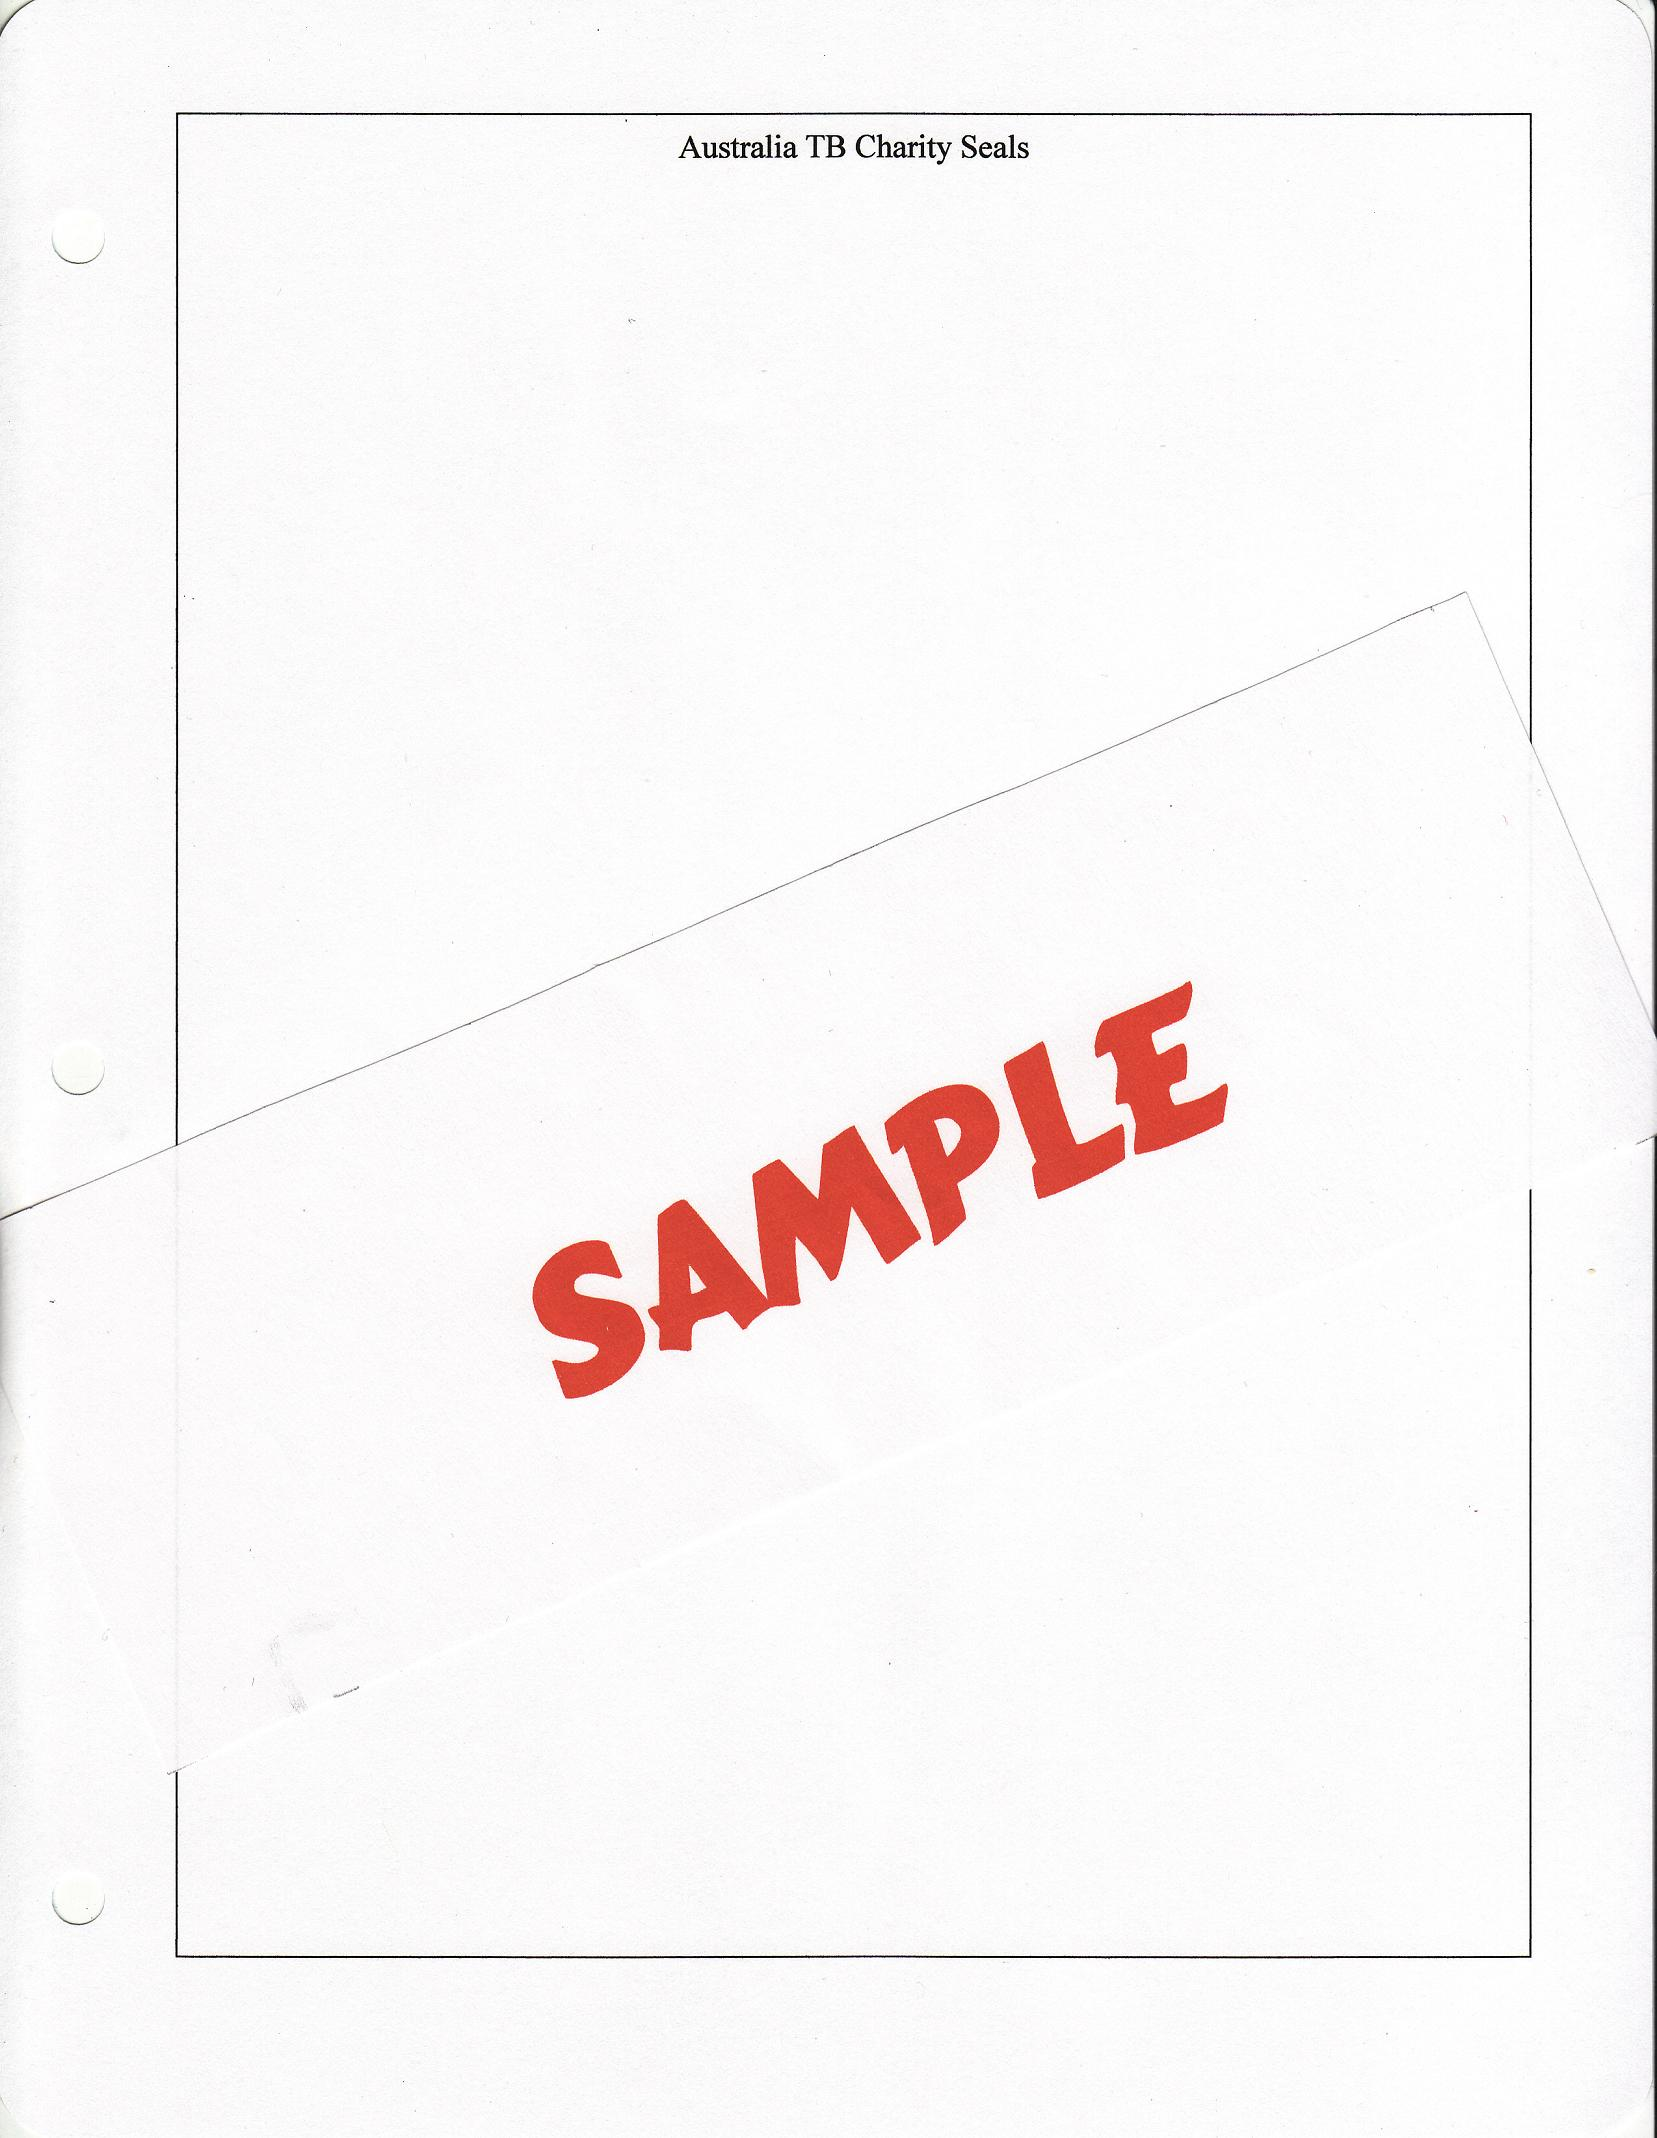 Australia TB Charity Seal Album Pages, Blank White Pages with title and border